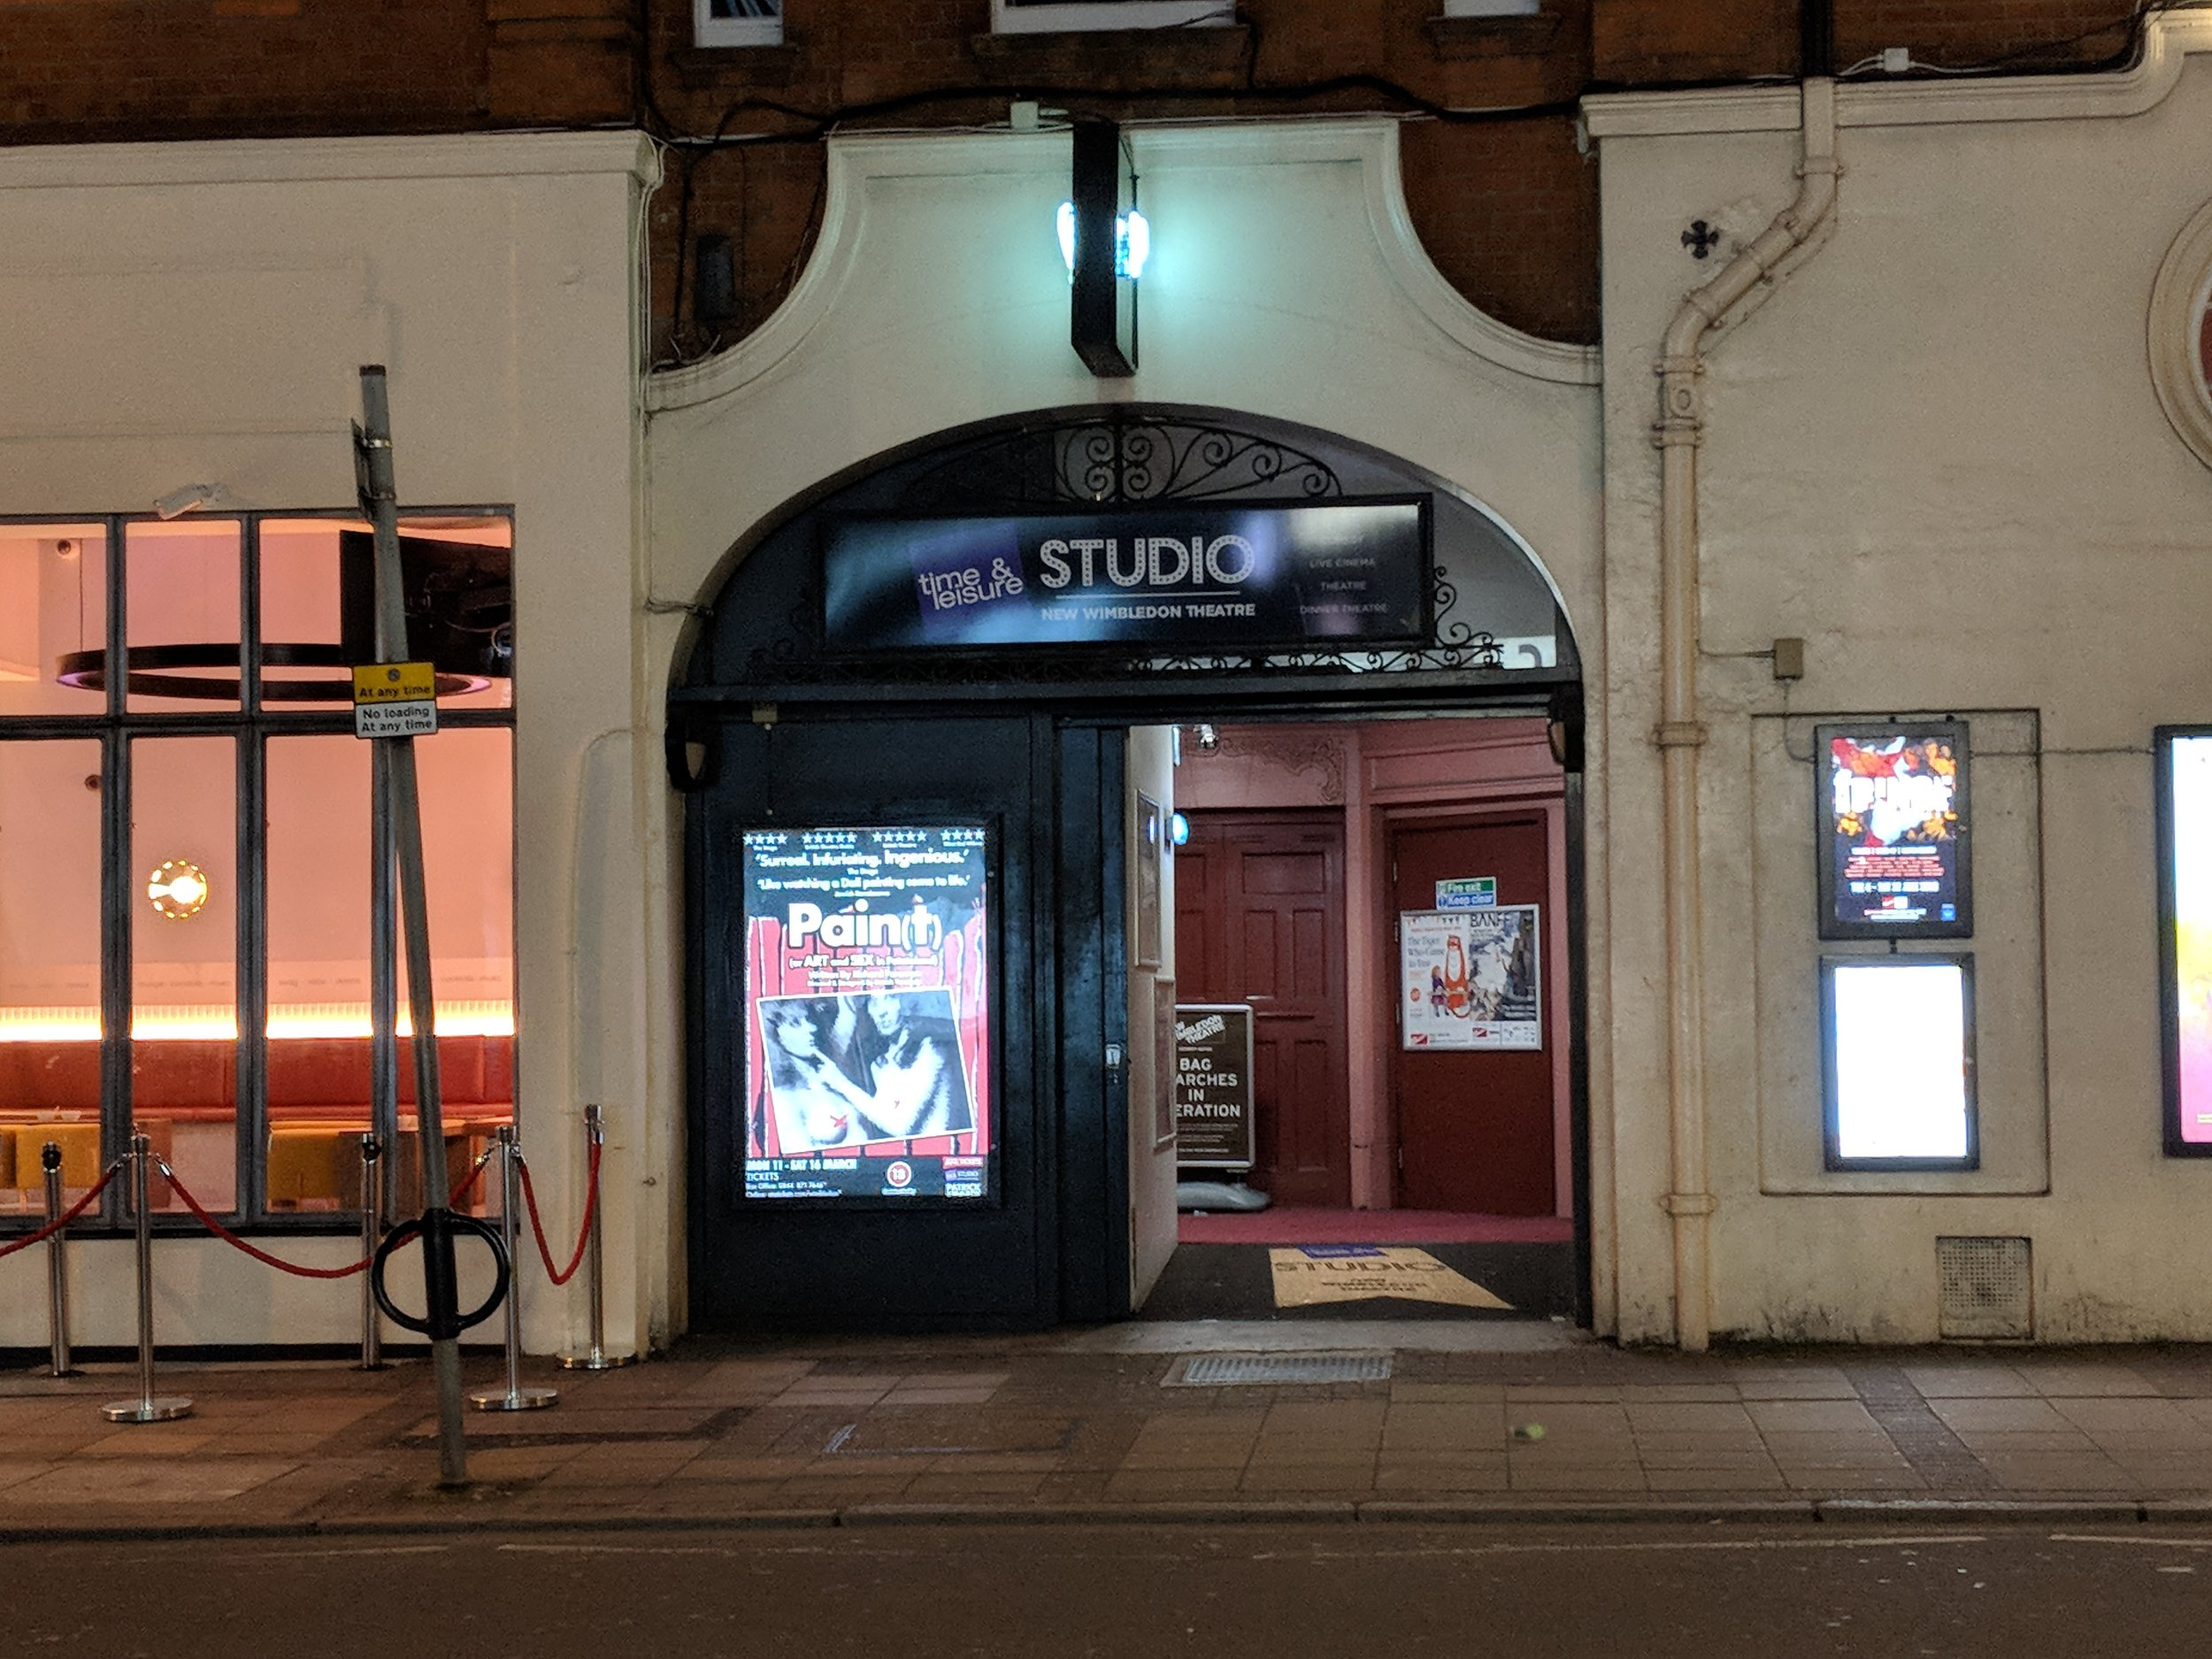 New Wimbledon Theatre(Time and Leisure Studio) - visited 11/03/2019